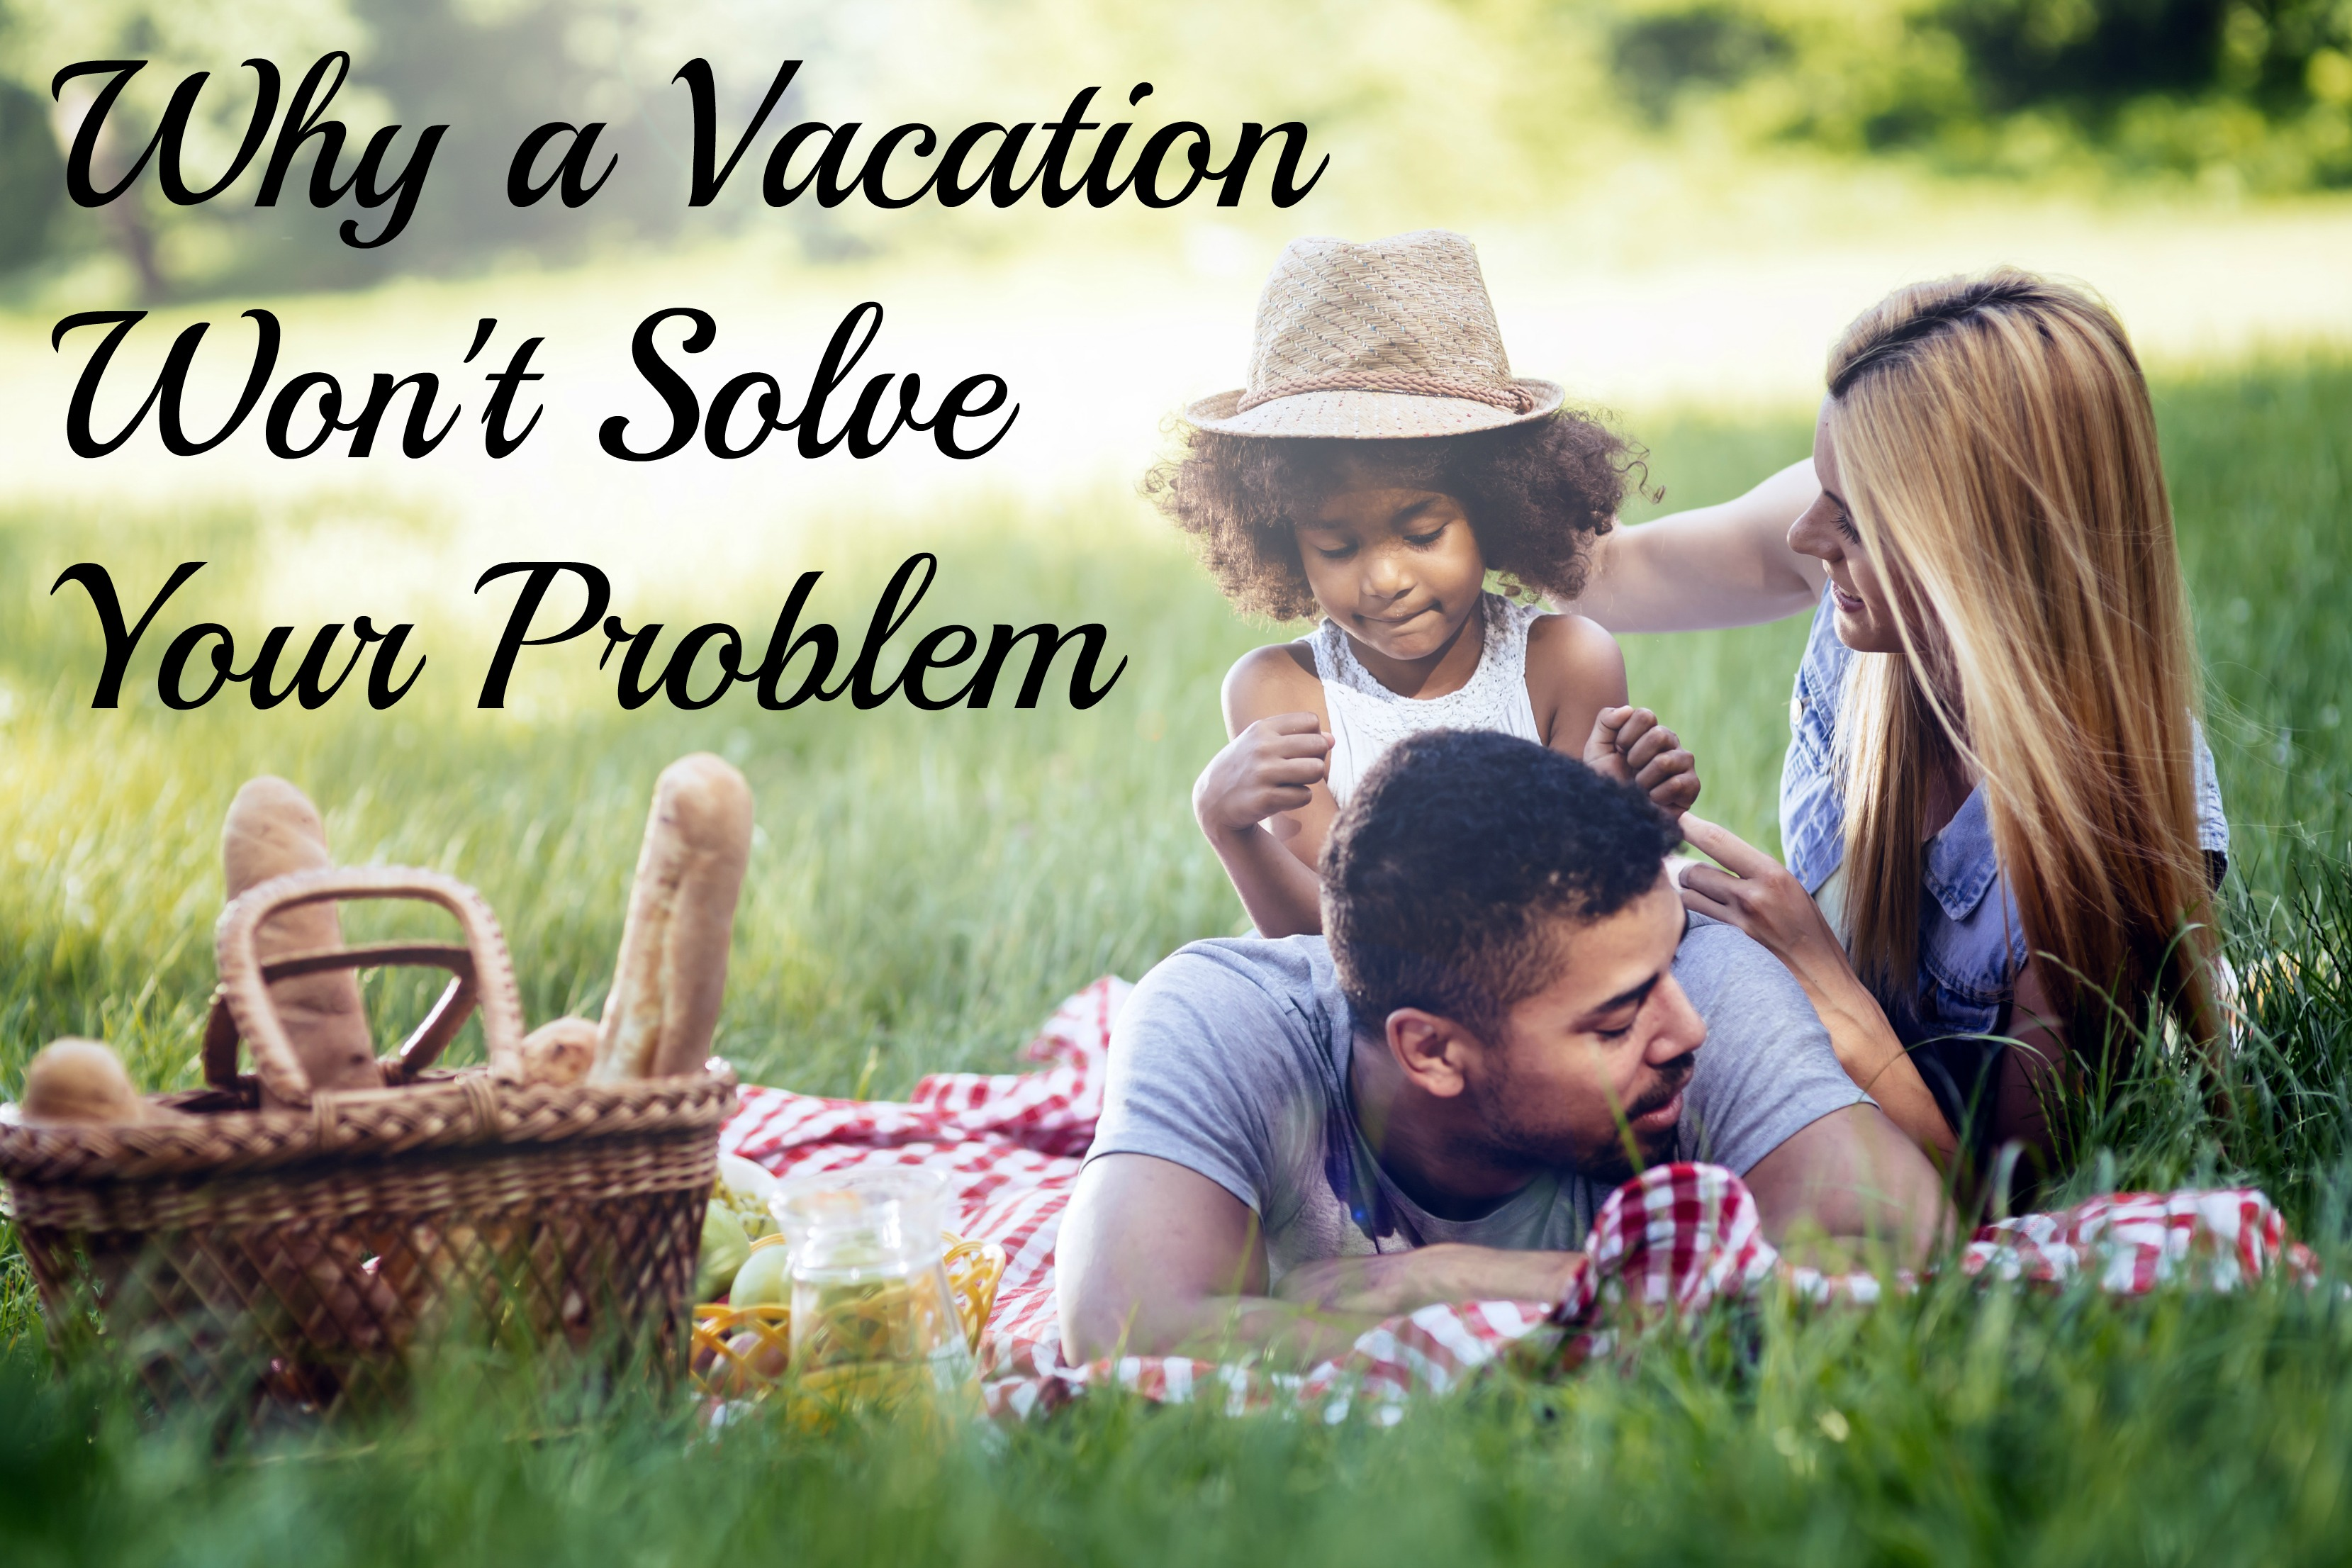 Vacation won't solve